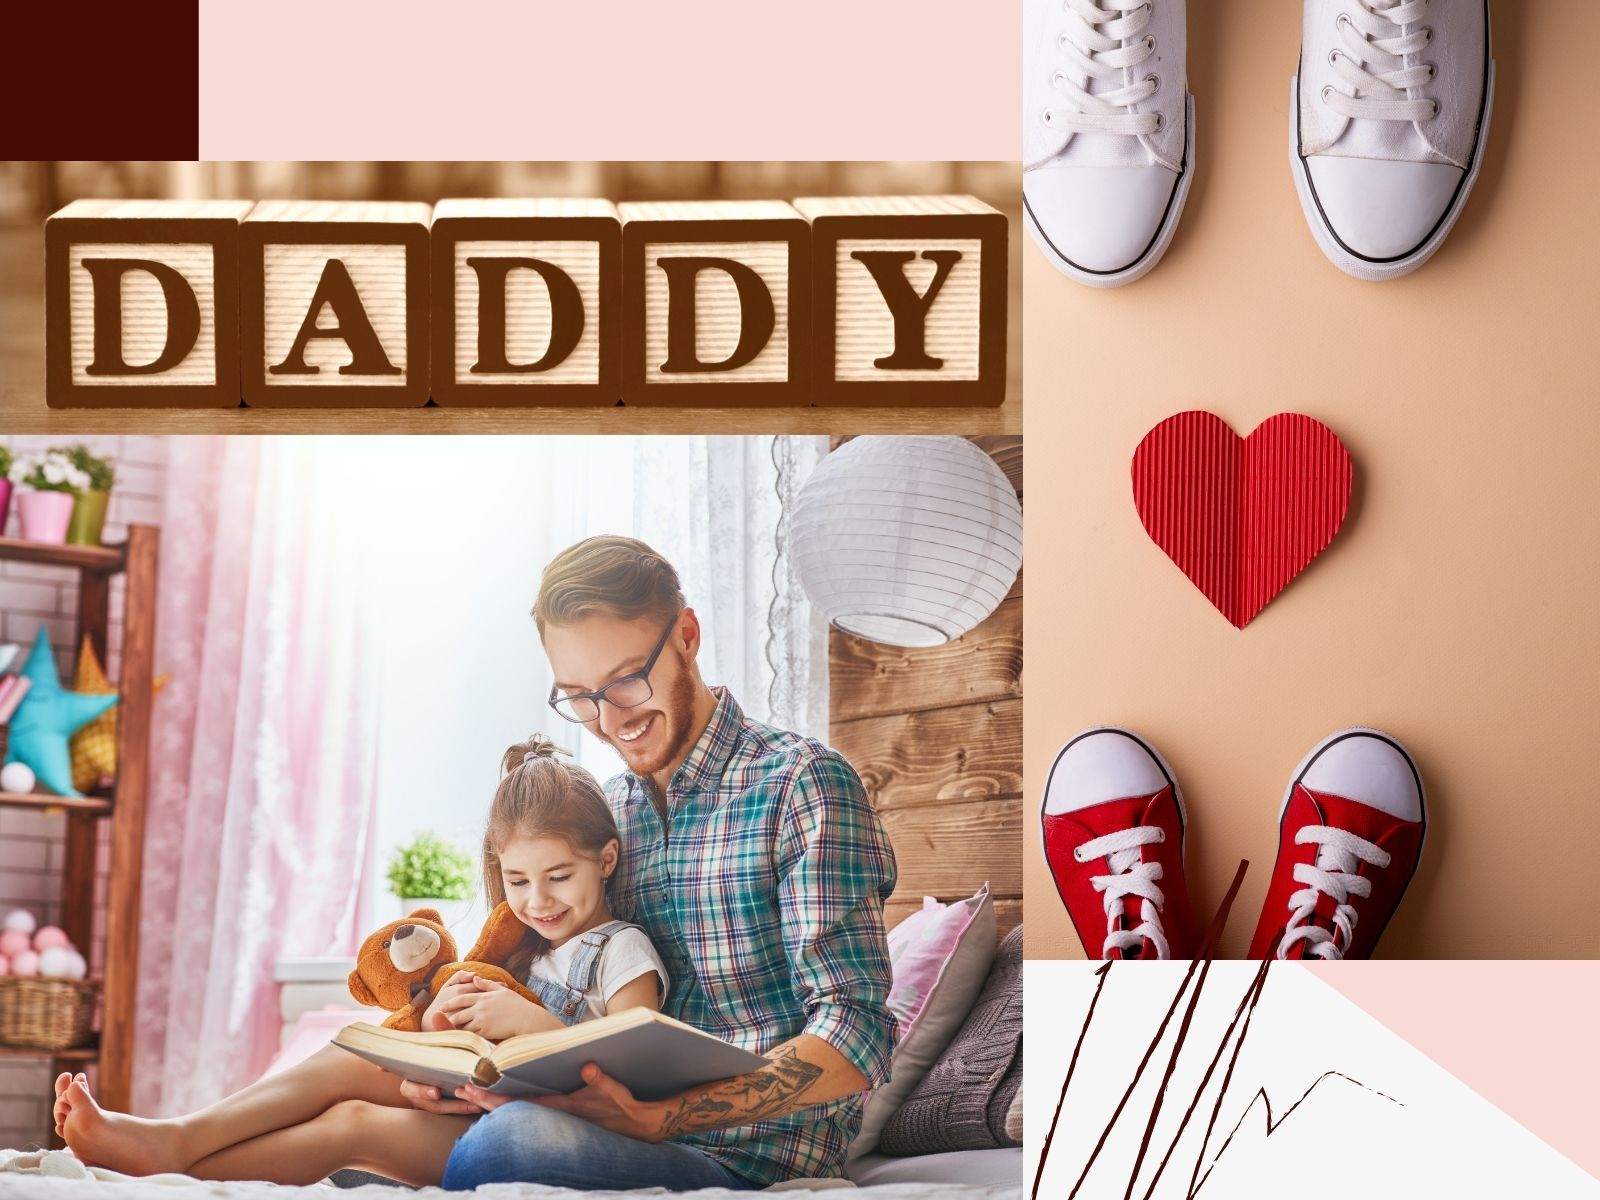 Daddy, I love you and I always will